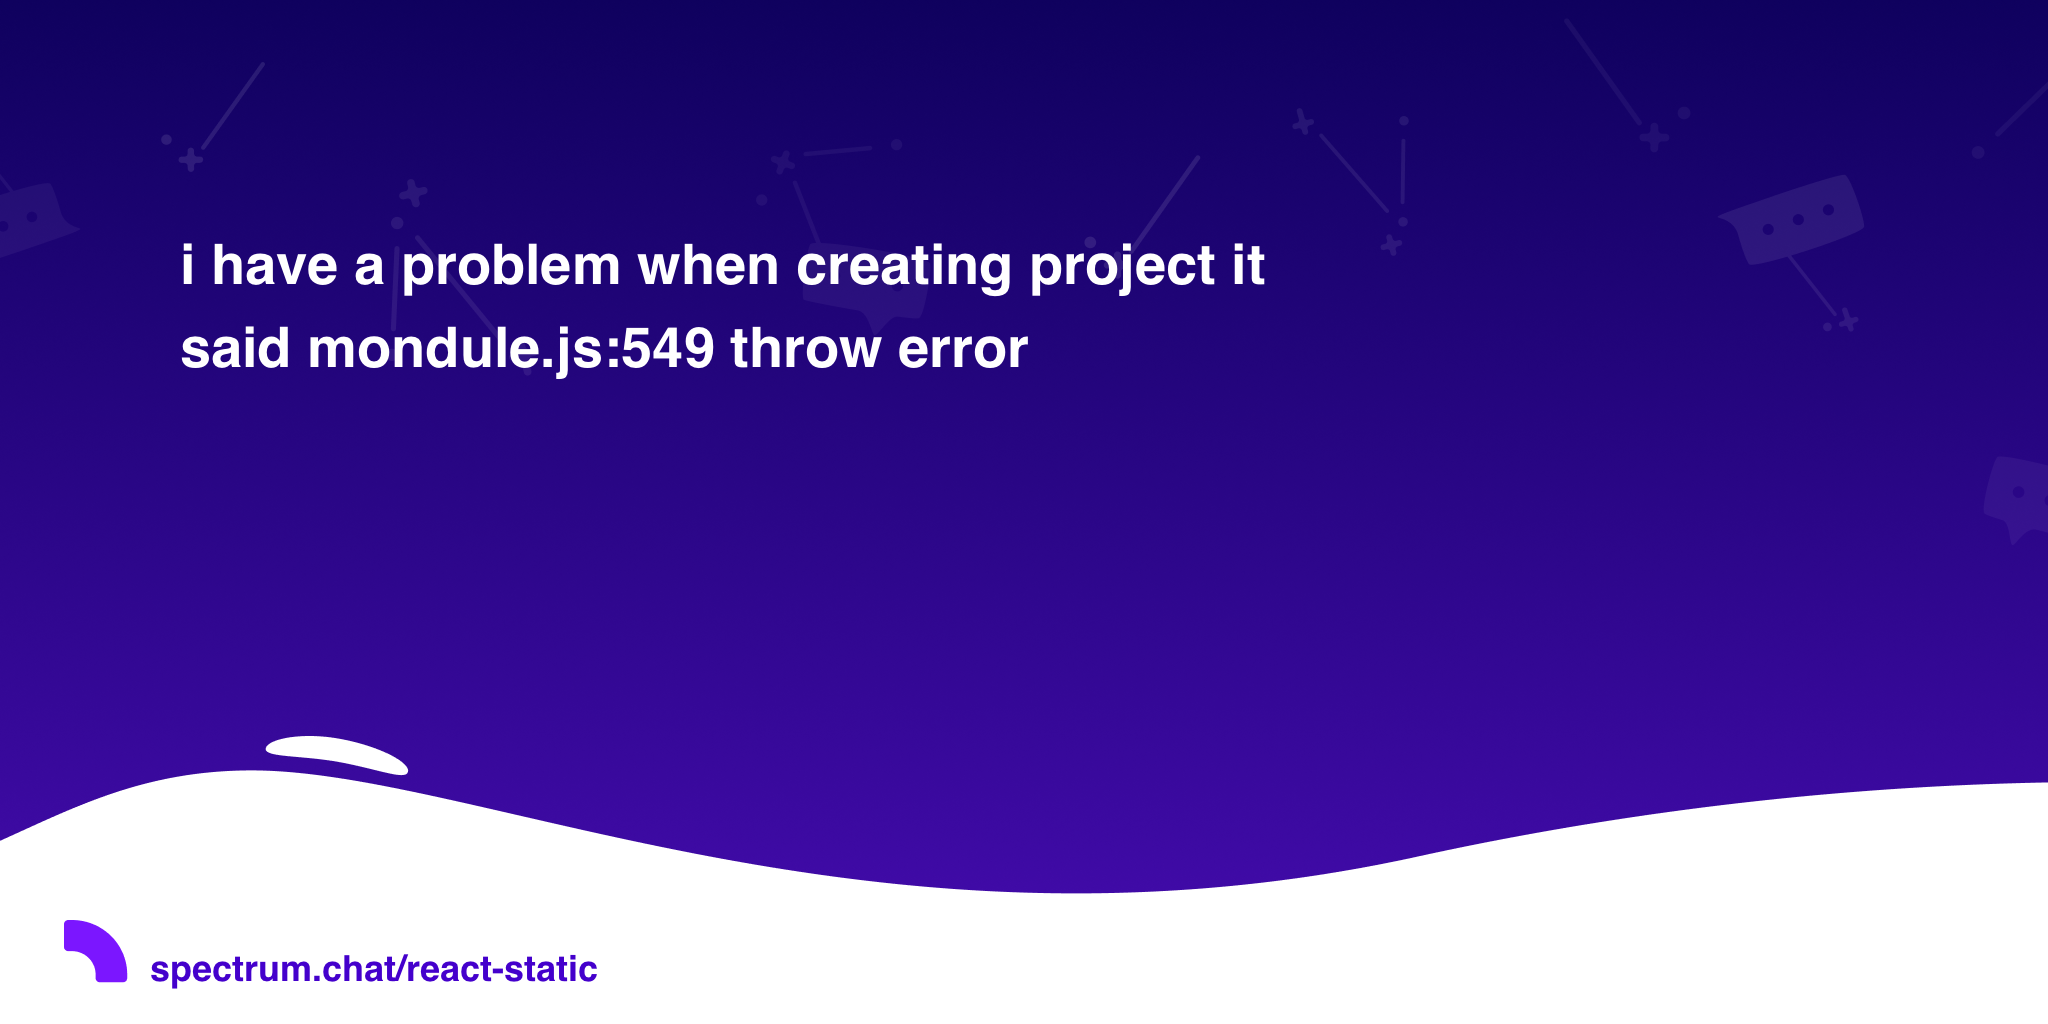 i have a problem when creating project it said mondule js:549 throw